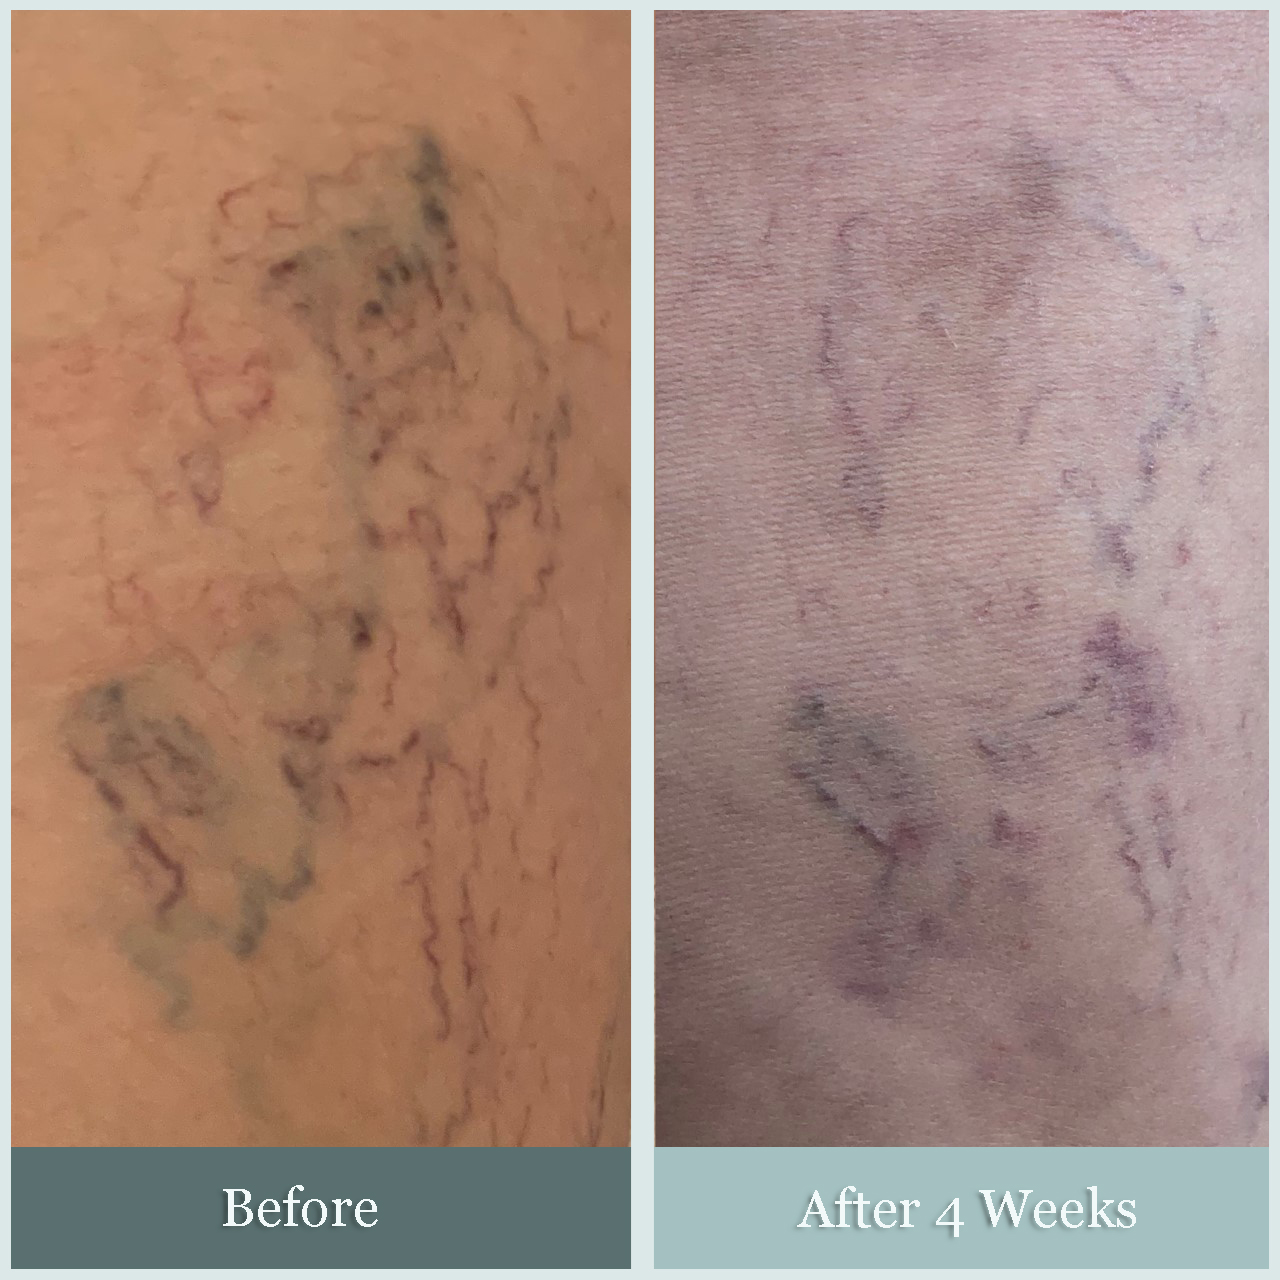 before and after photo of sclerotherapy patient